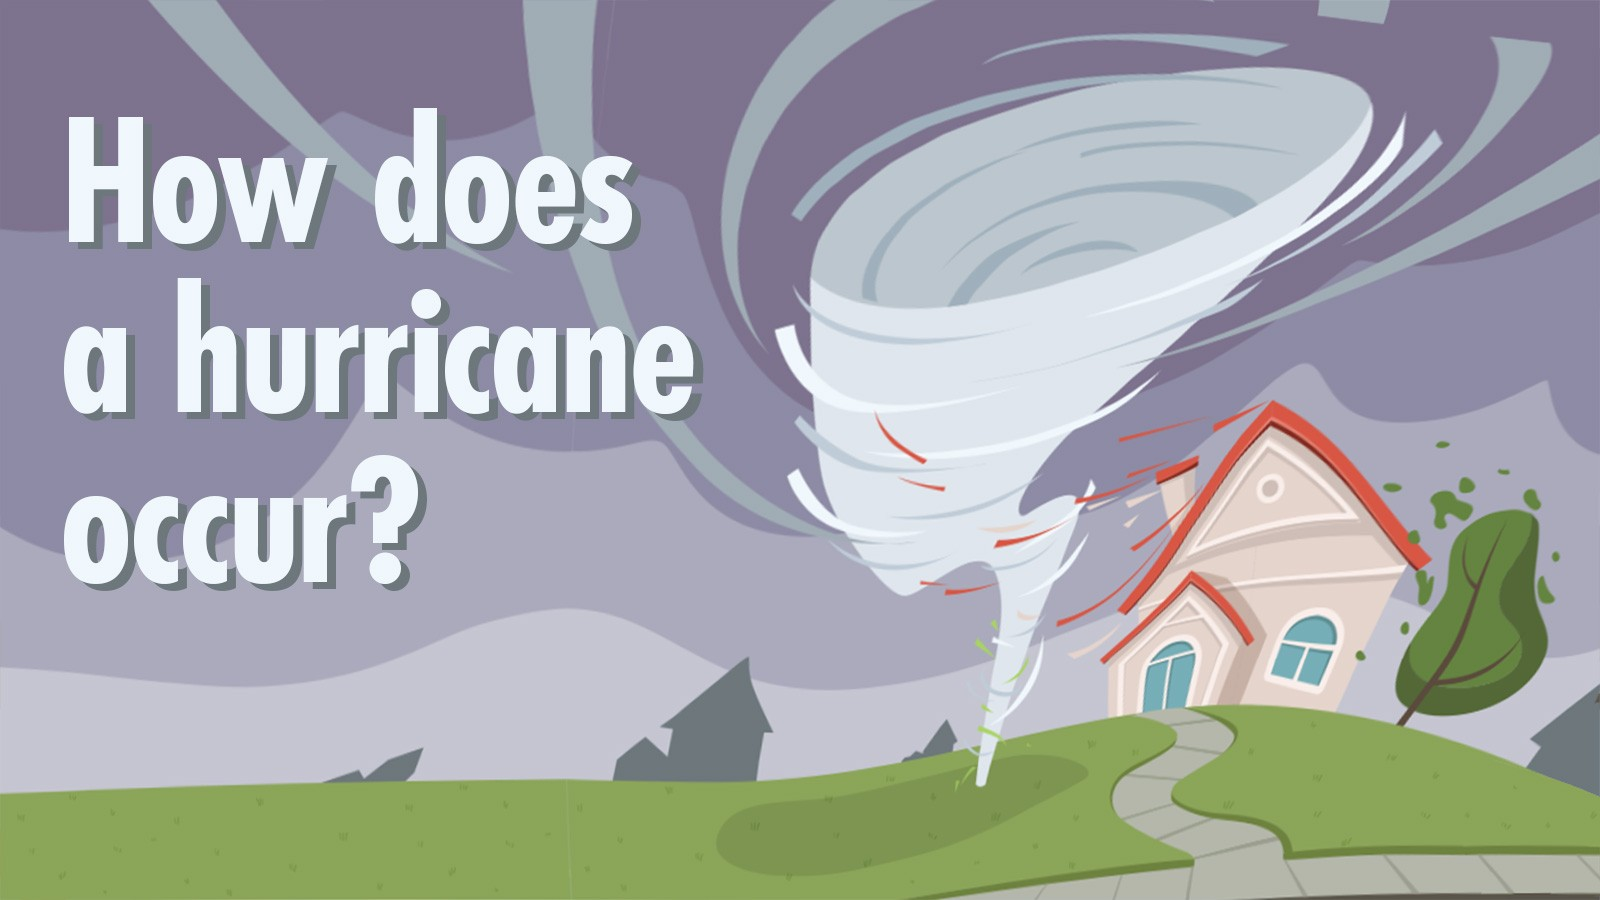 Cause and effect hurricane question